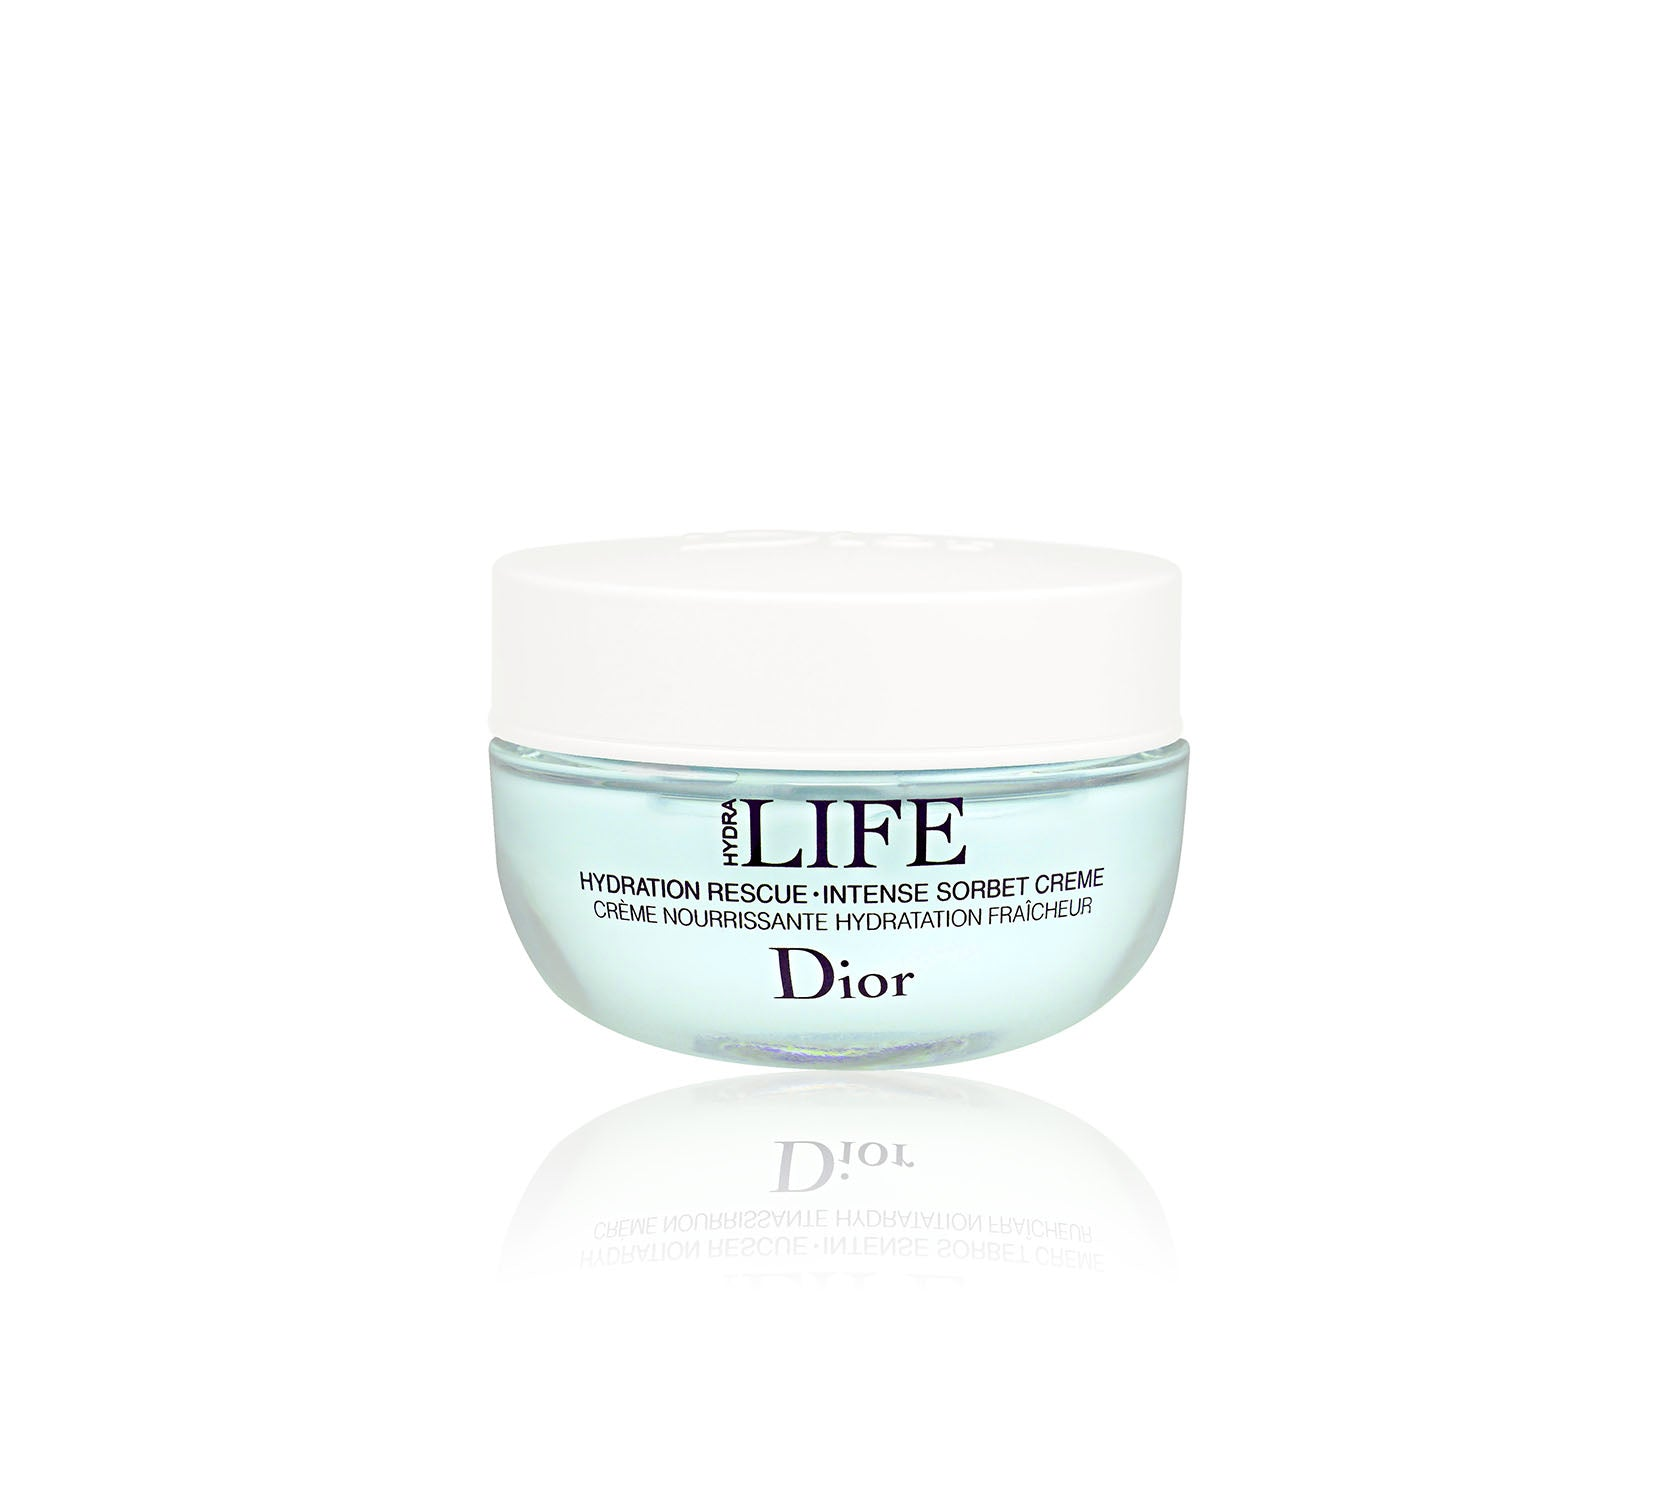 Hydra Life Hydration Rescue • Intense Sorbet Creme